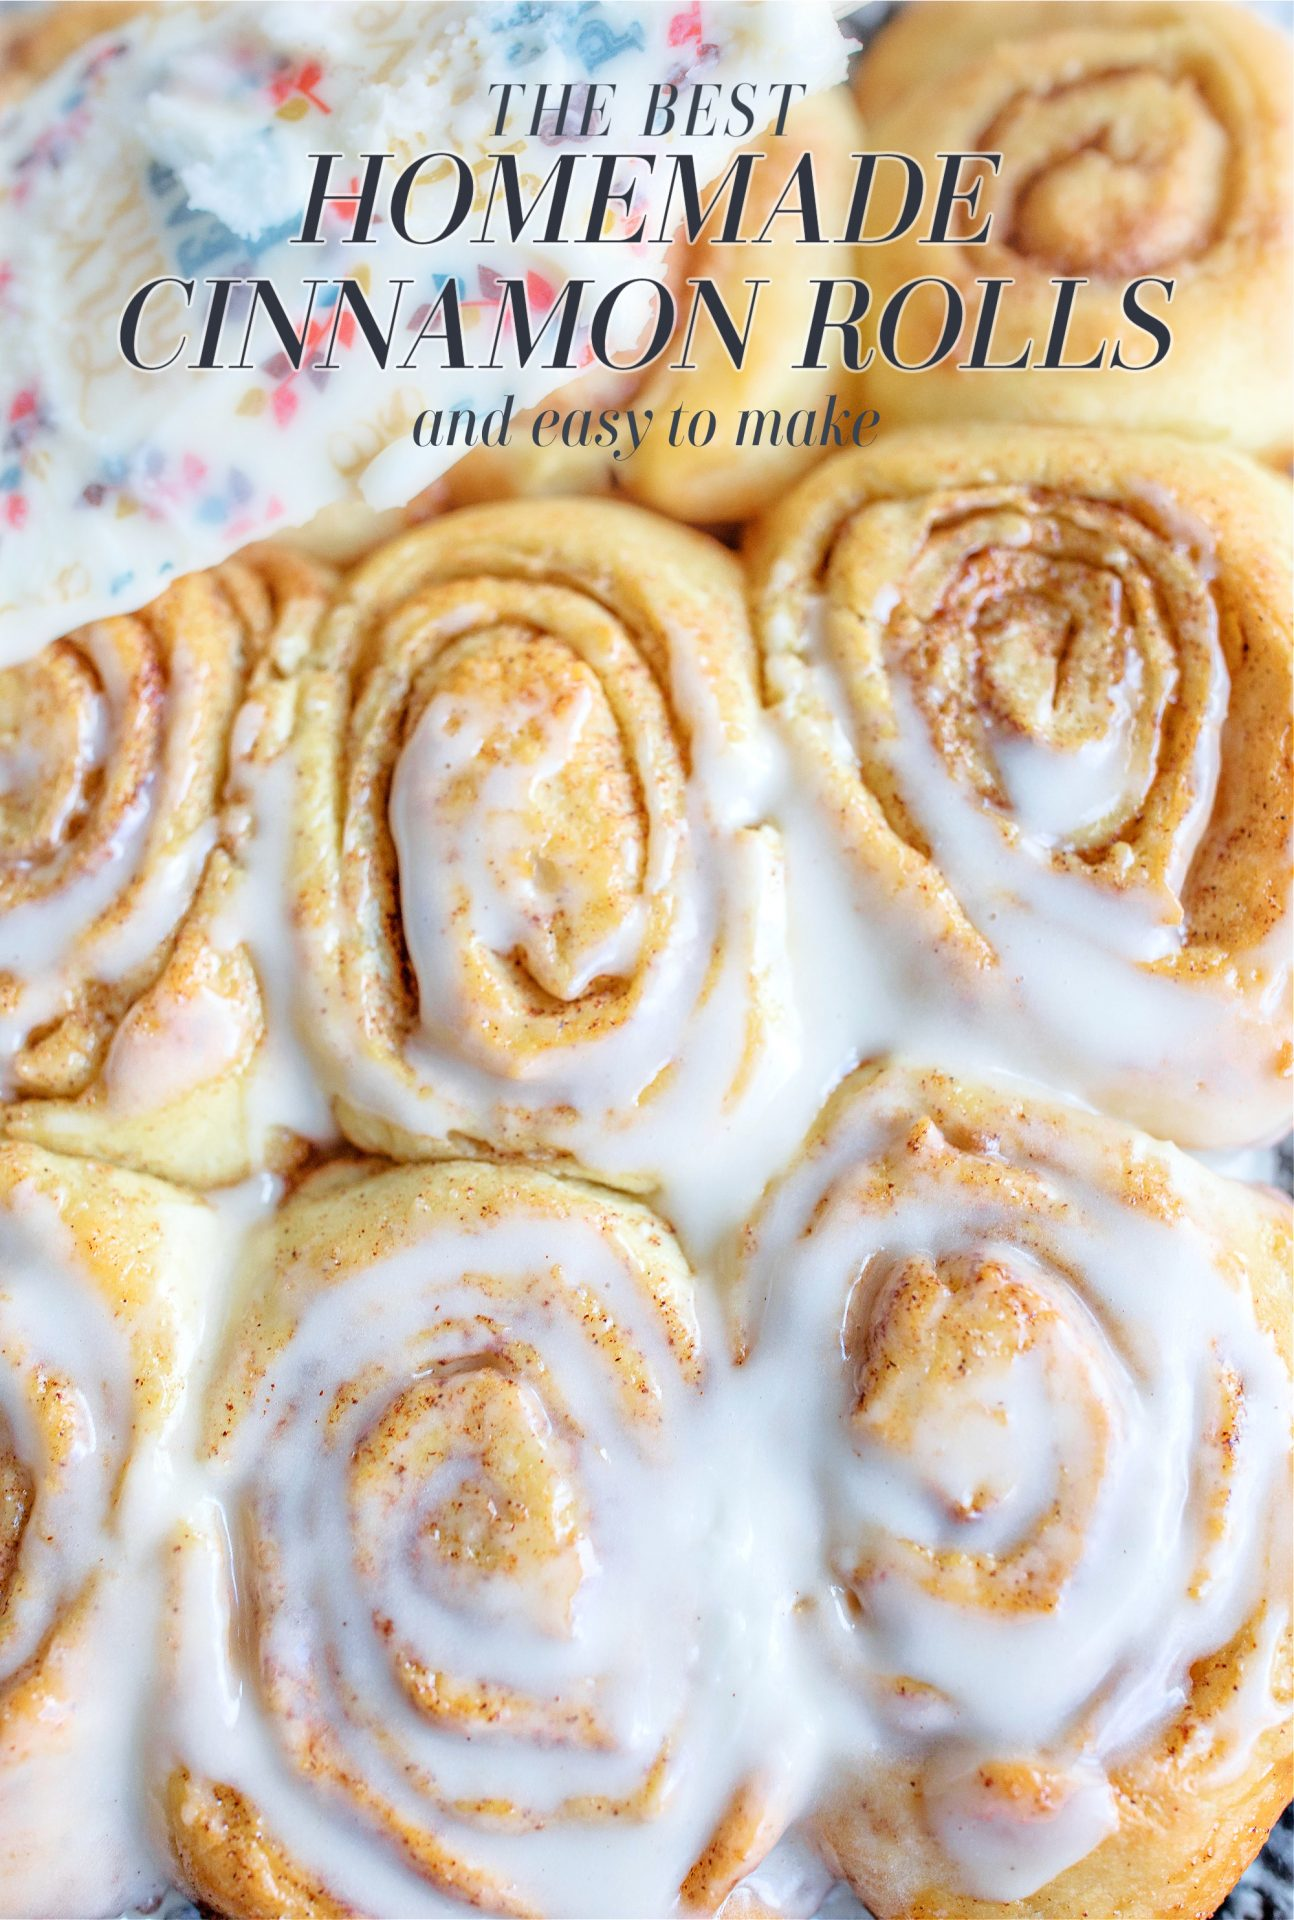 the best cinnamon rolls you'll ever eat, easy to make cinnamon rolls, cinnamon rolls, baking, baked cinnamon rolls, cinnamon rolls from scratch, homemade cinnamon buns, frosting, vanilla frosting, cinnamon rolls, frosted cinnamon rolls,